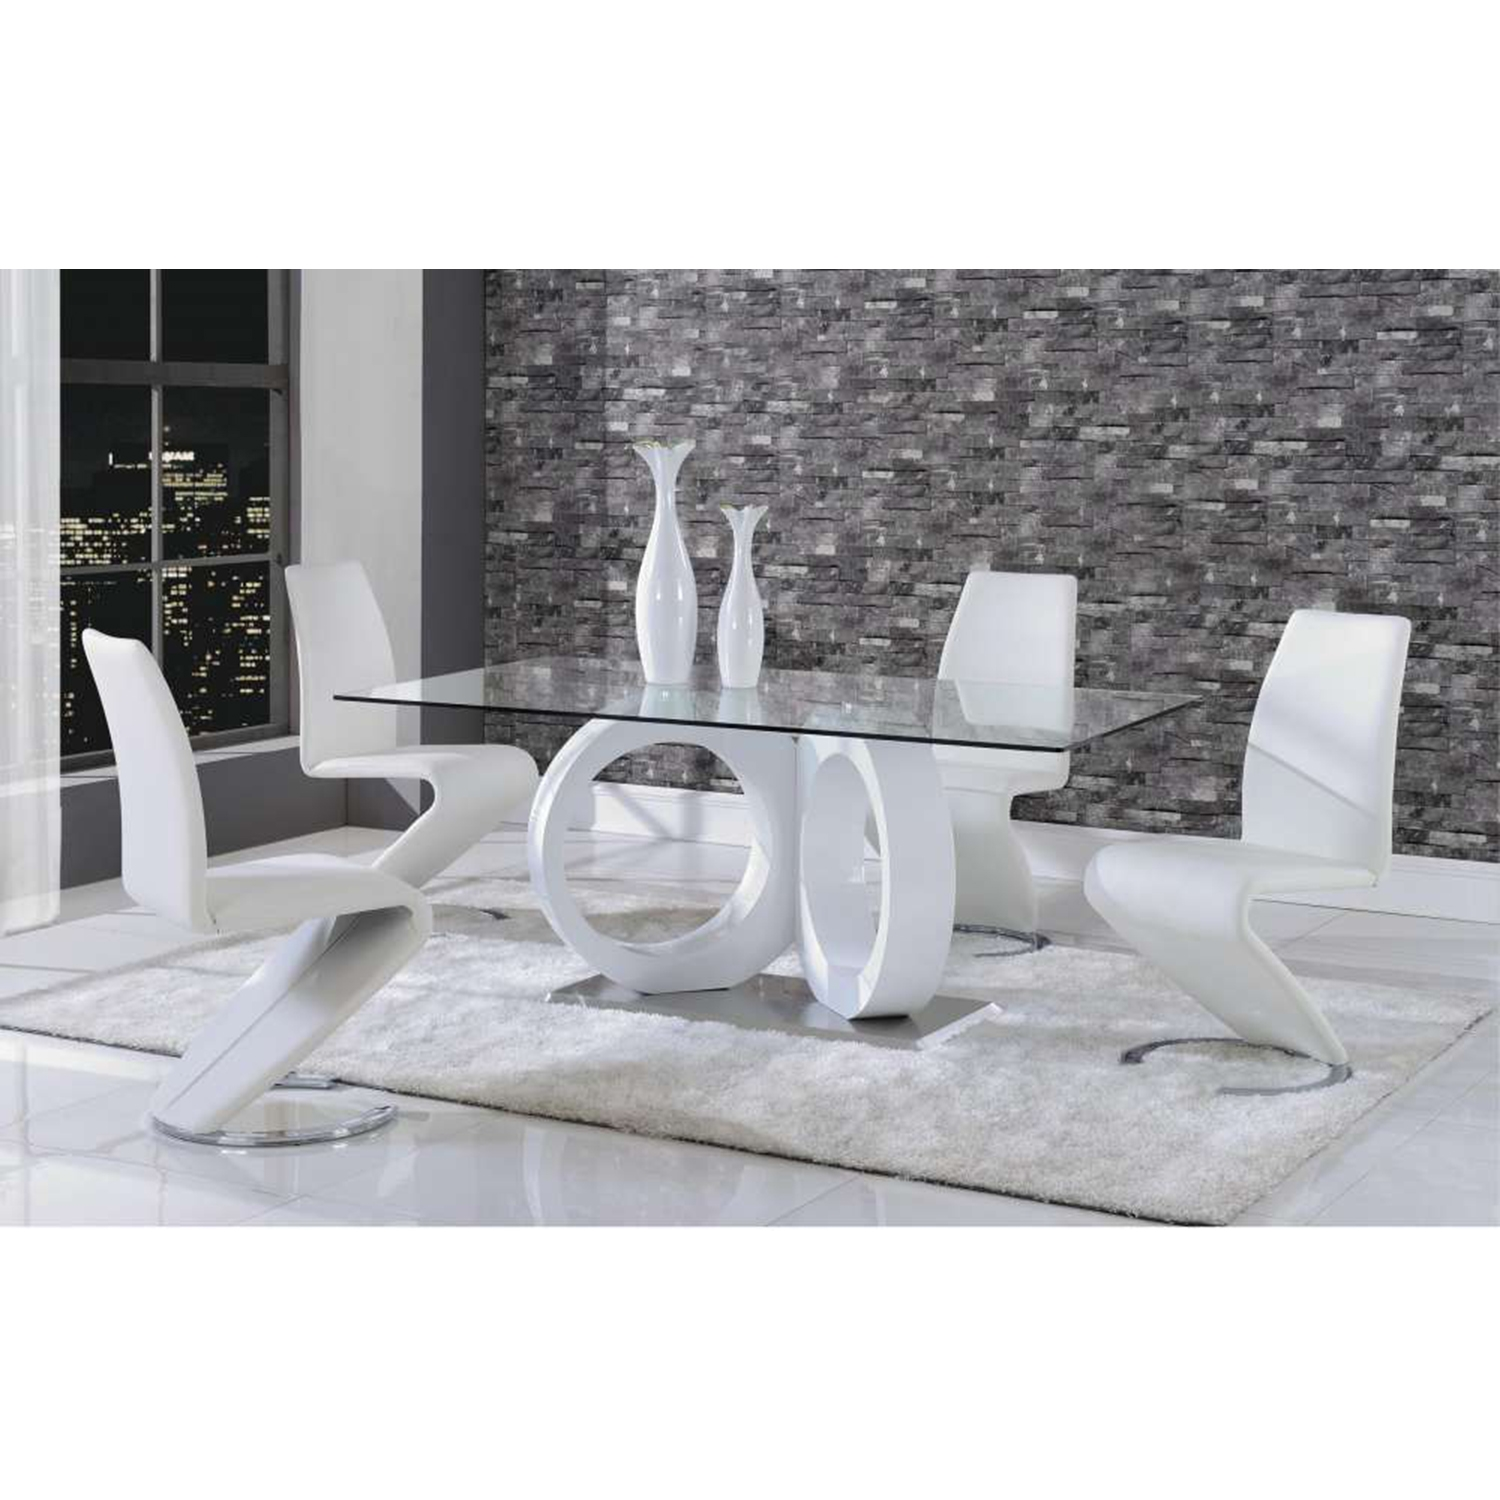 Skylar 5-Piece Dining Set with White Chairs